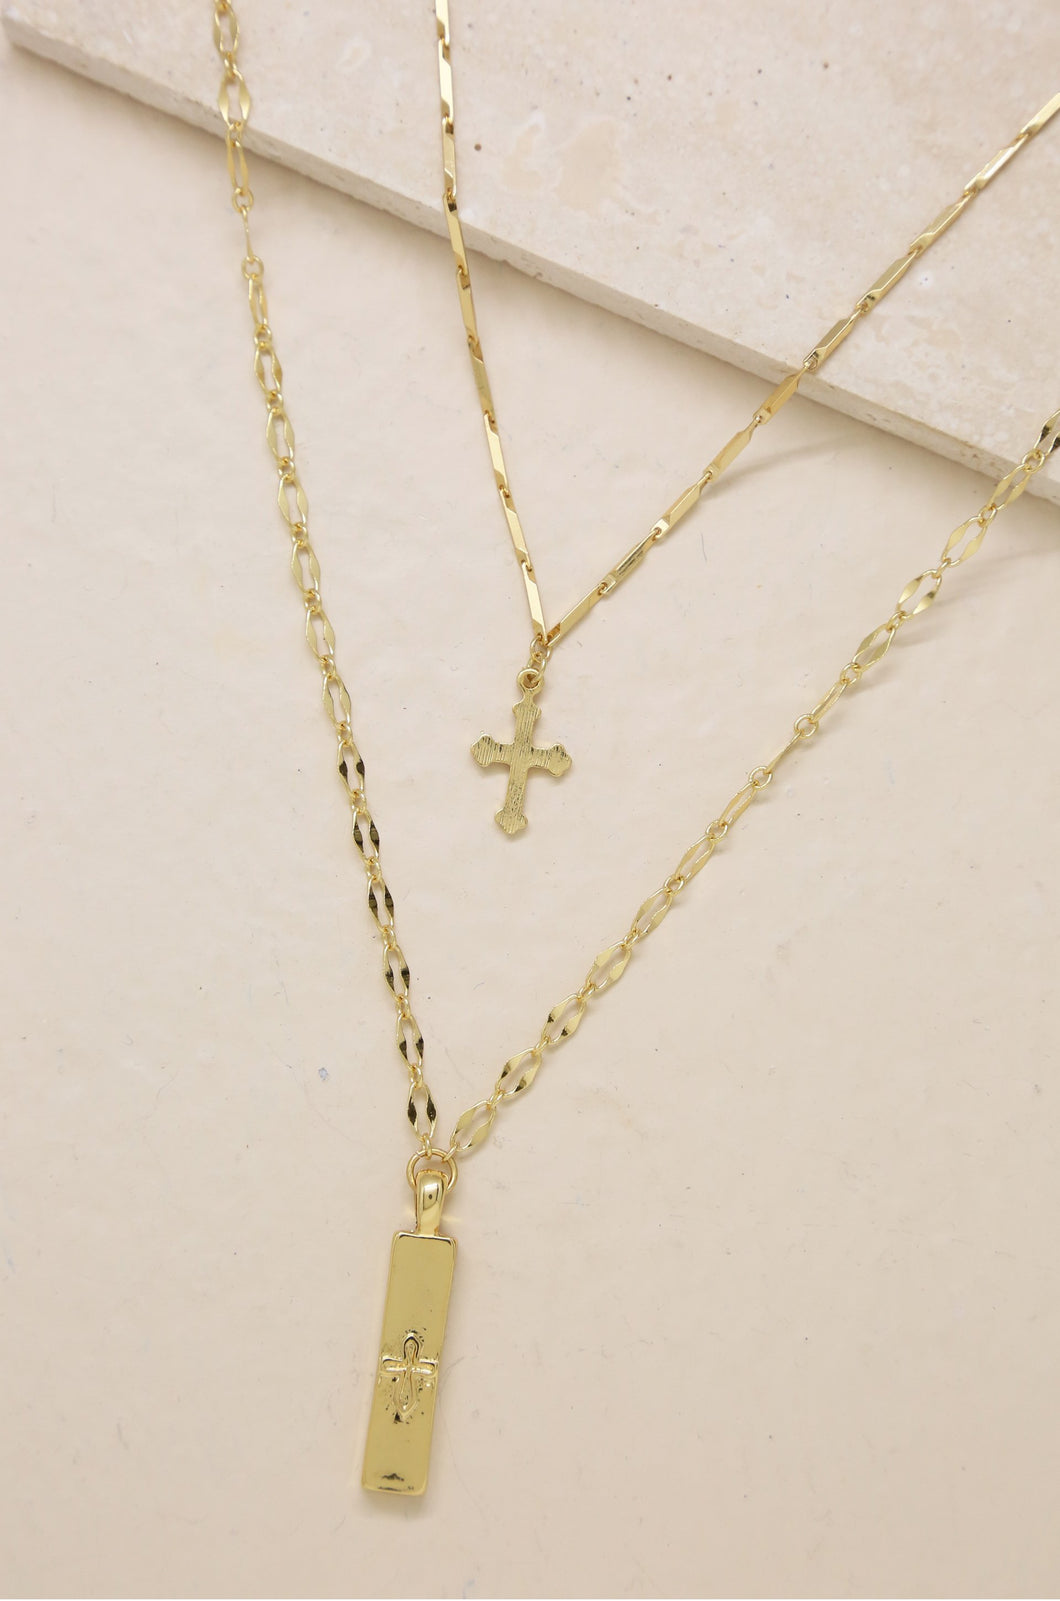 Your Highness 18k Gold Plated Cross Necklace Set